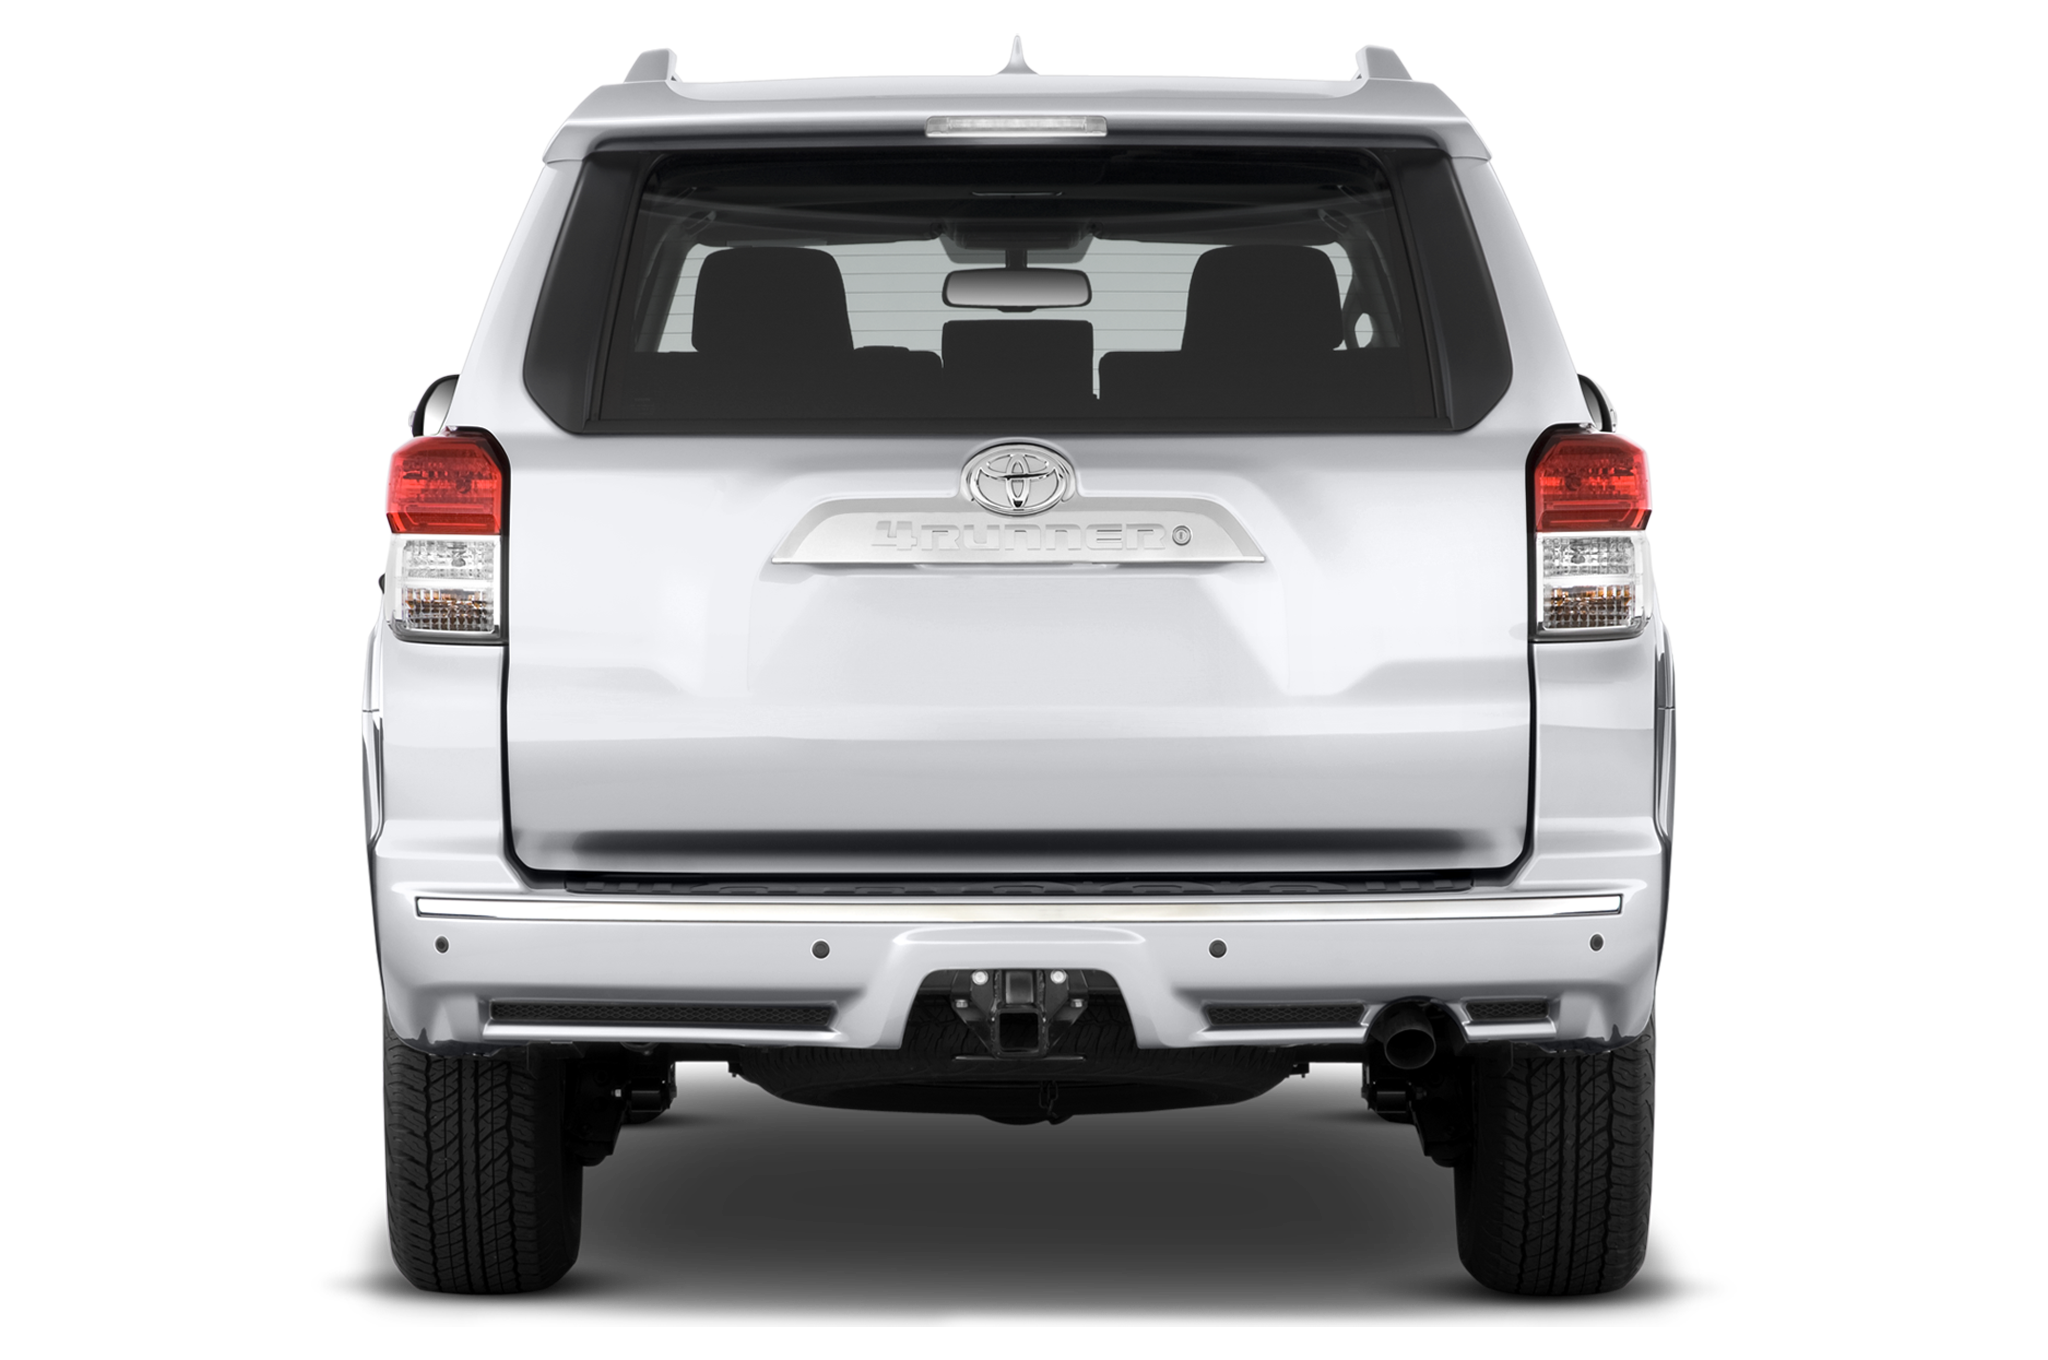 2010 Toyota 4runner Toyota Compact Suv Review